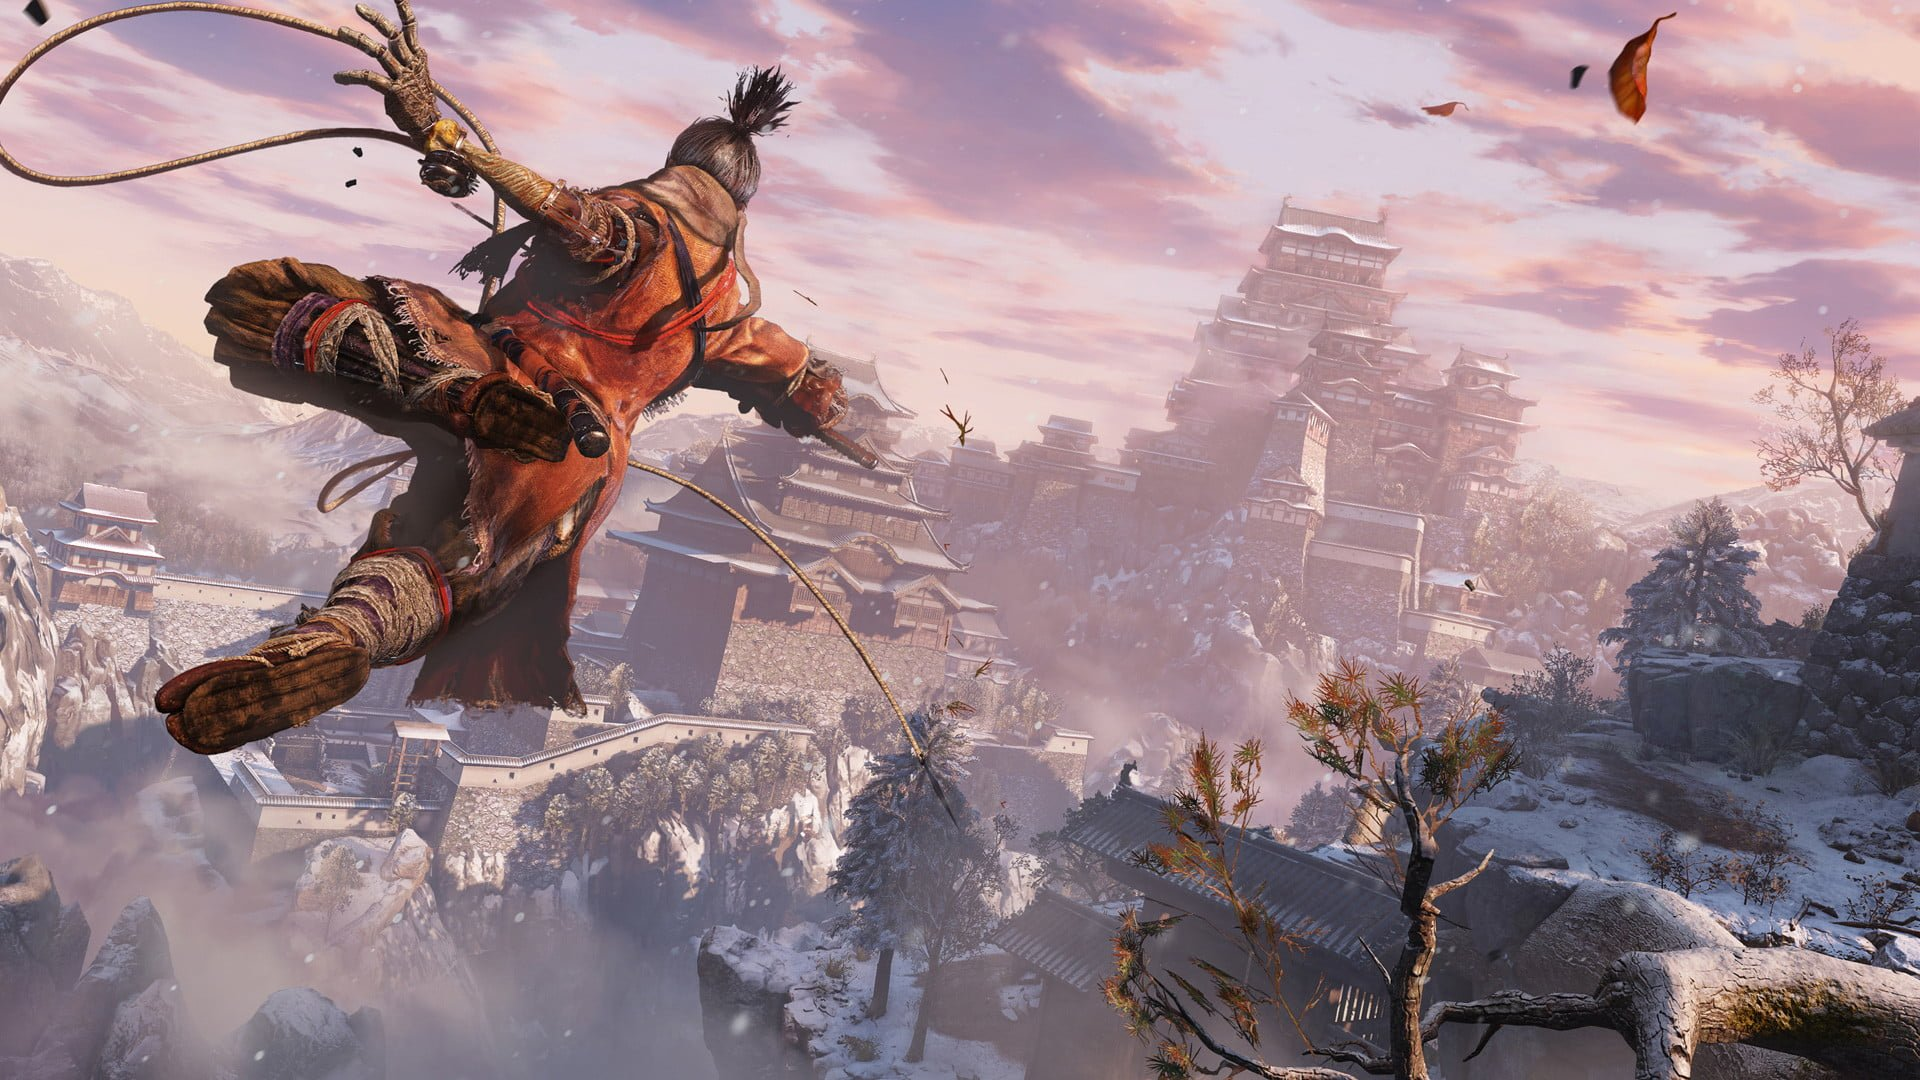 Malcontent's Ring can be acquired by defeating the Shichimen Warrior enemy in the Guardian Ape's Burrow in Sekiro: Shadows Die Twice.